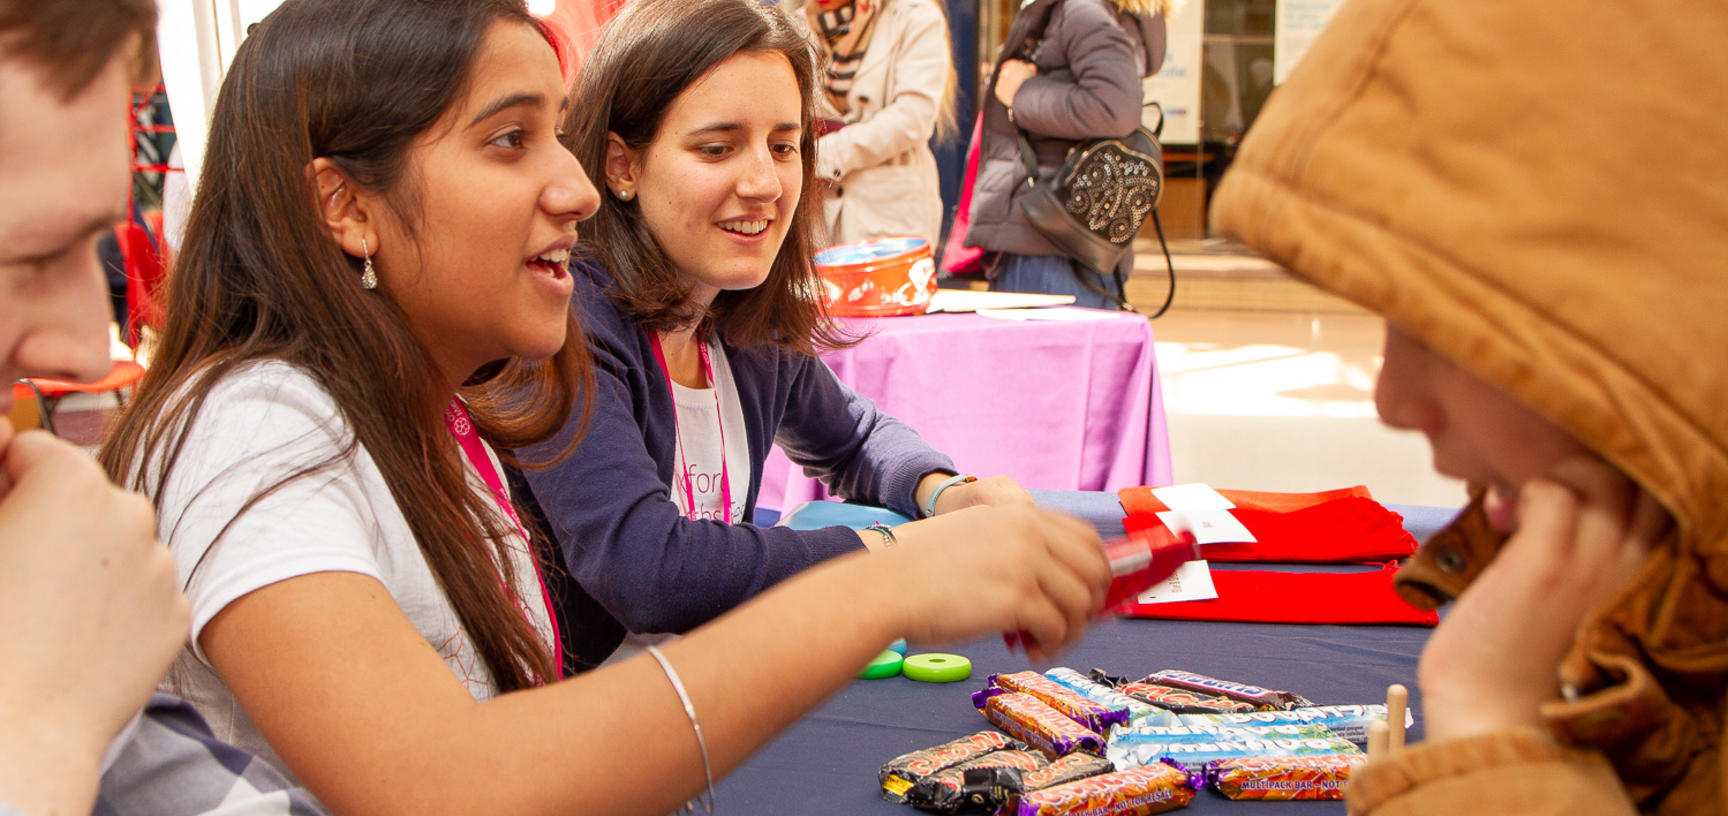 Volunteers play the chocolate game with children at the Oxford Maths Festival